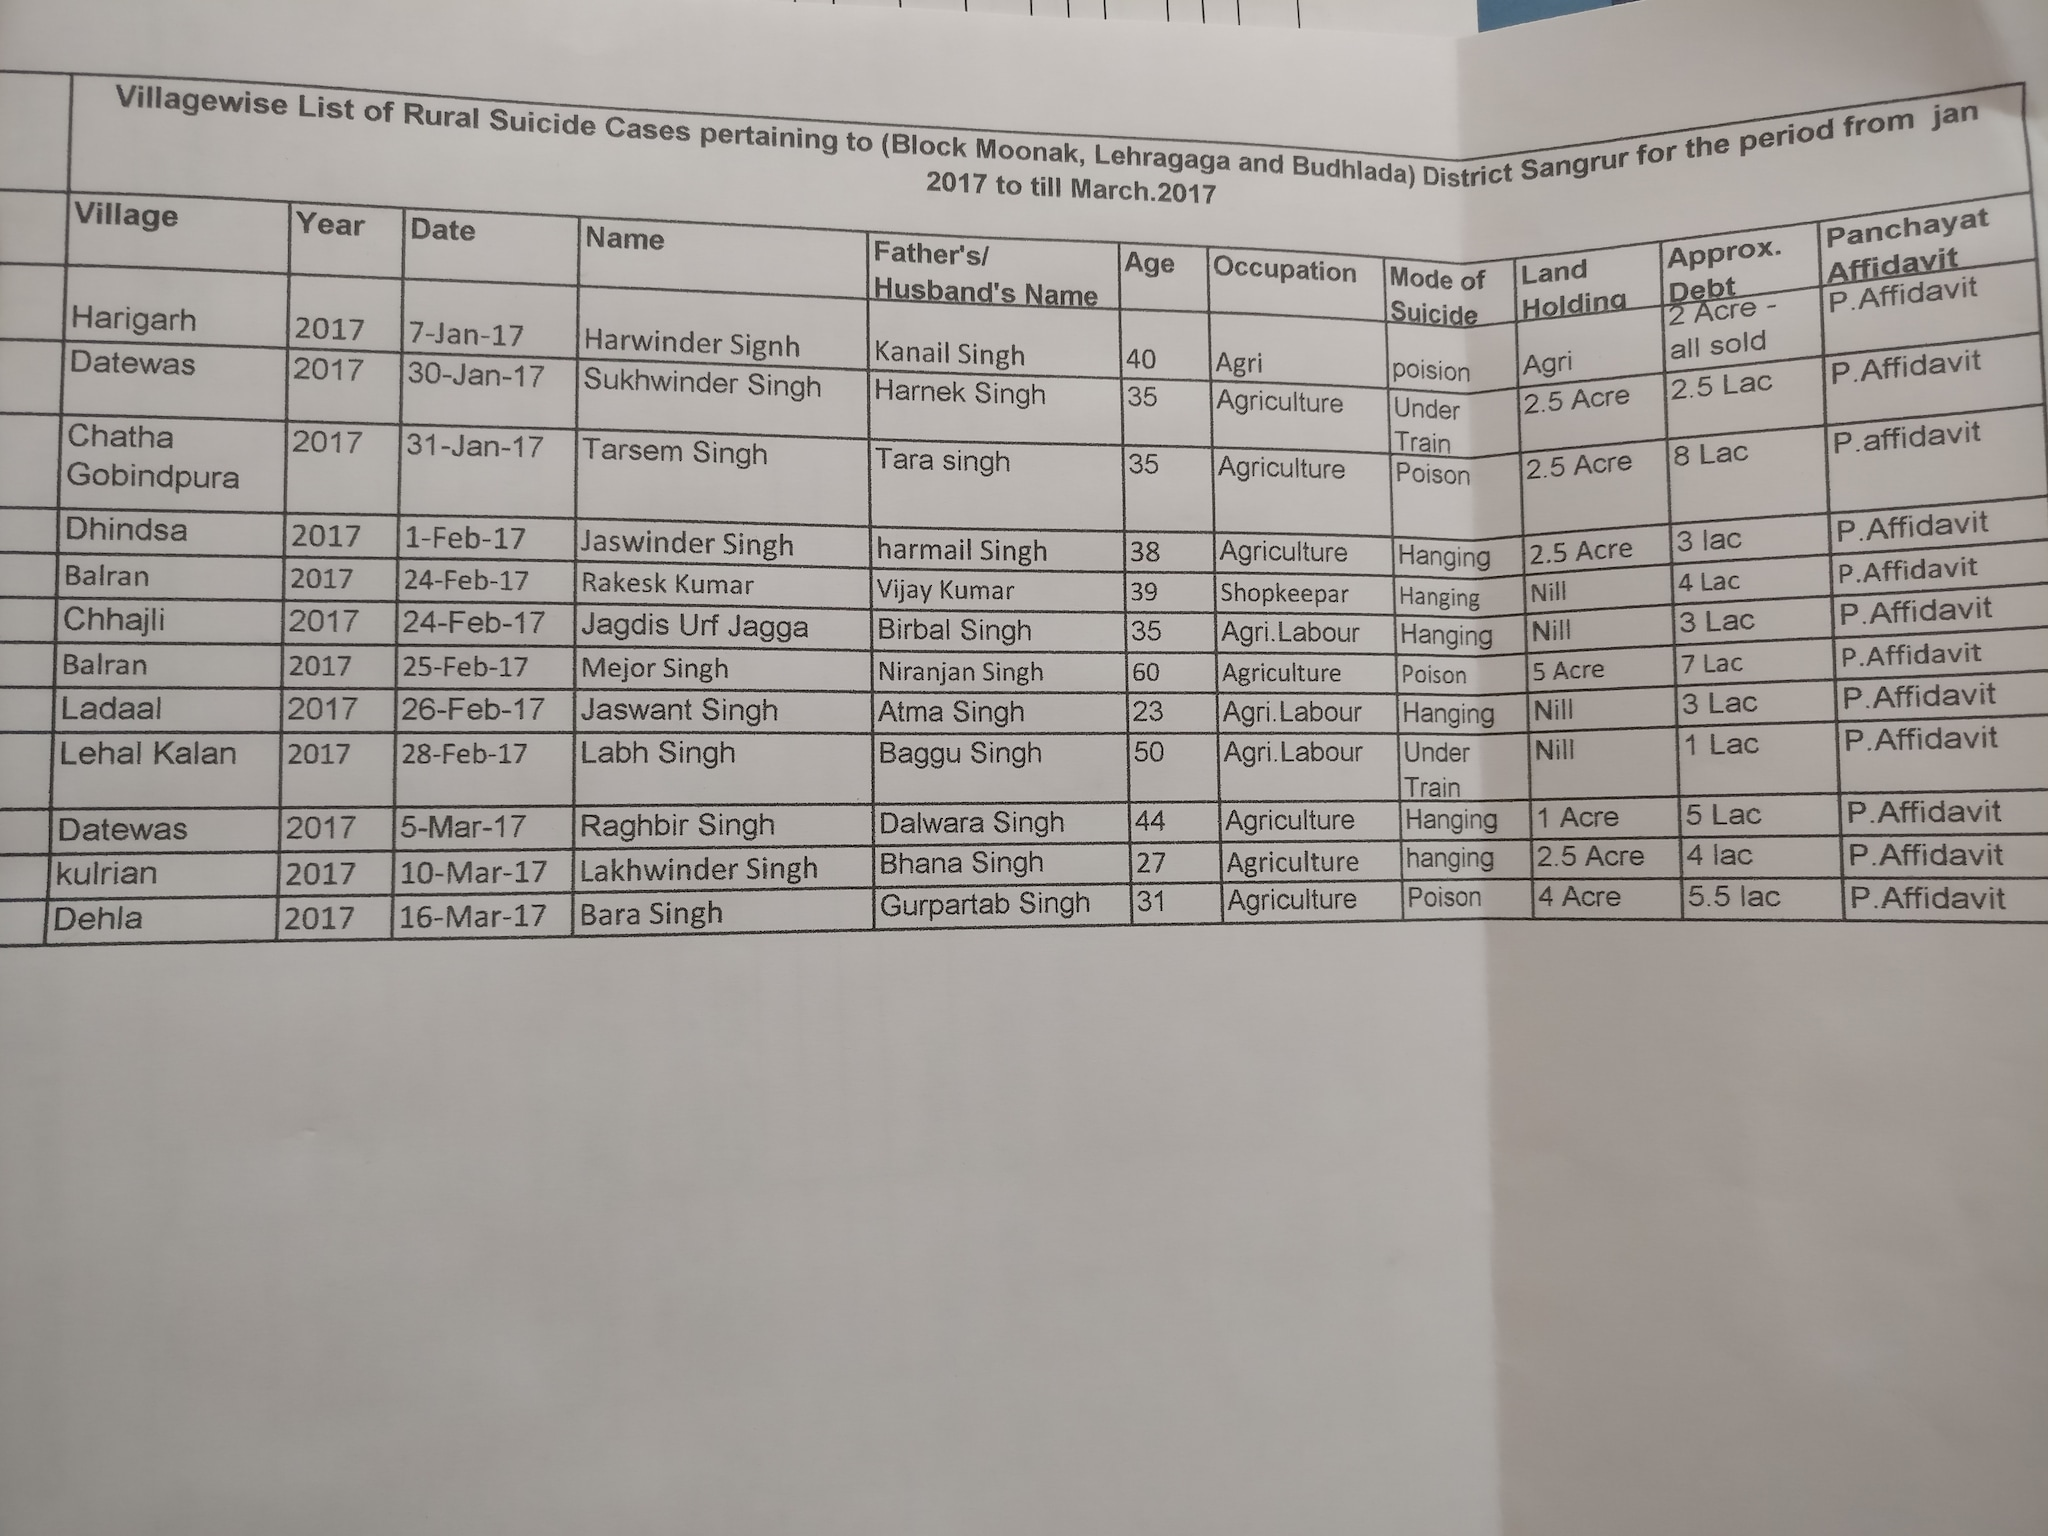 List of suicide cases from records compiled by Jaijee and his team.